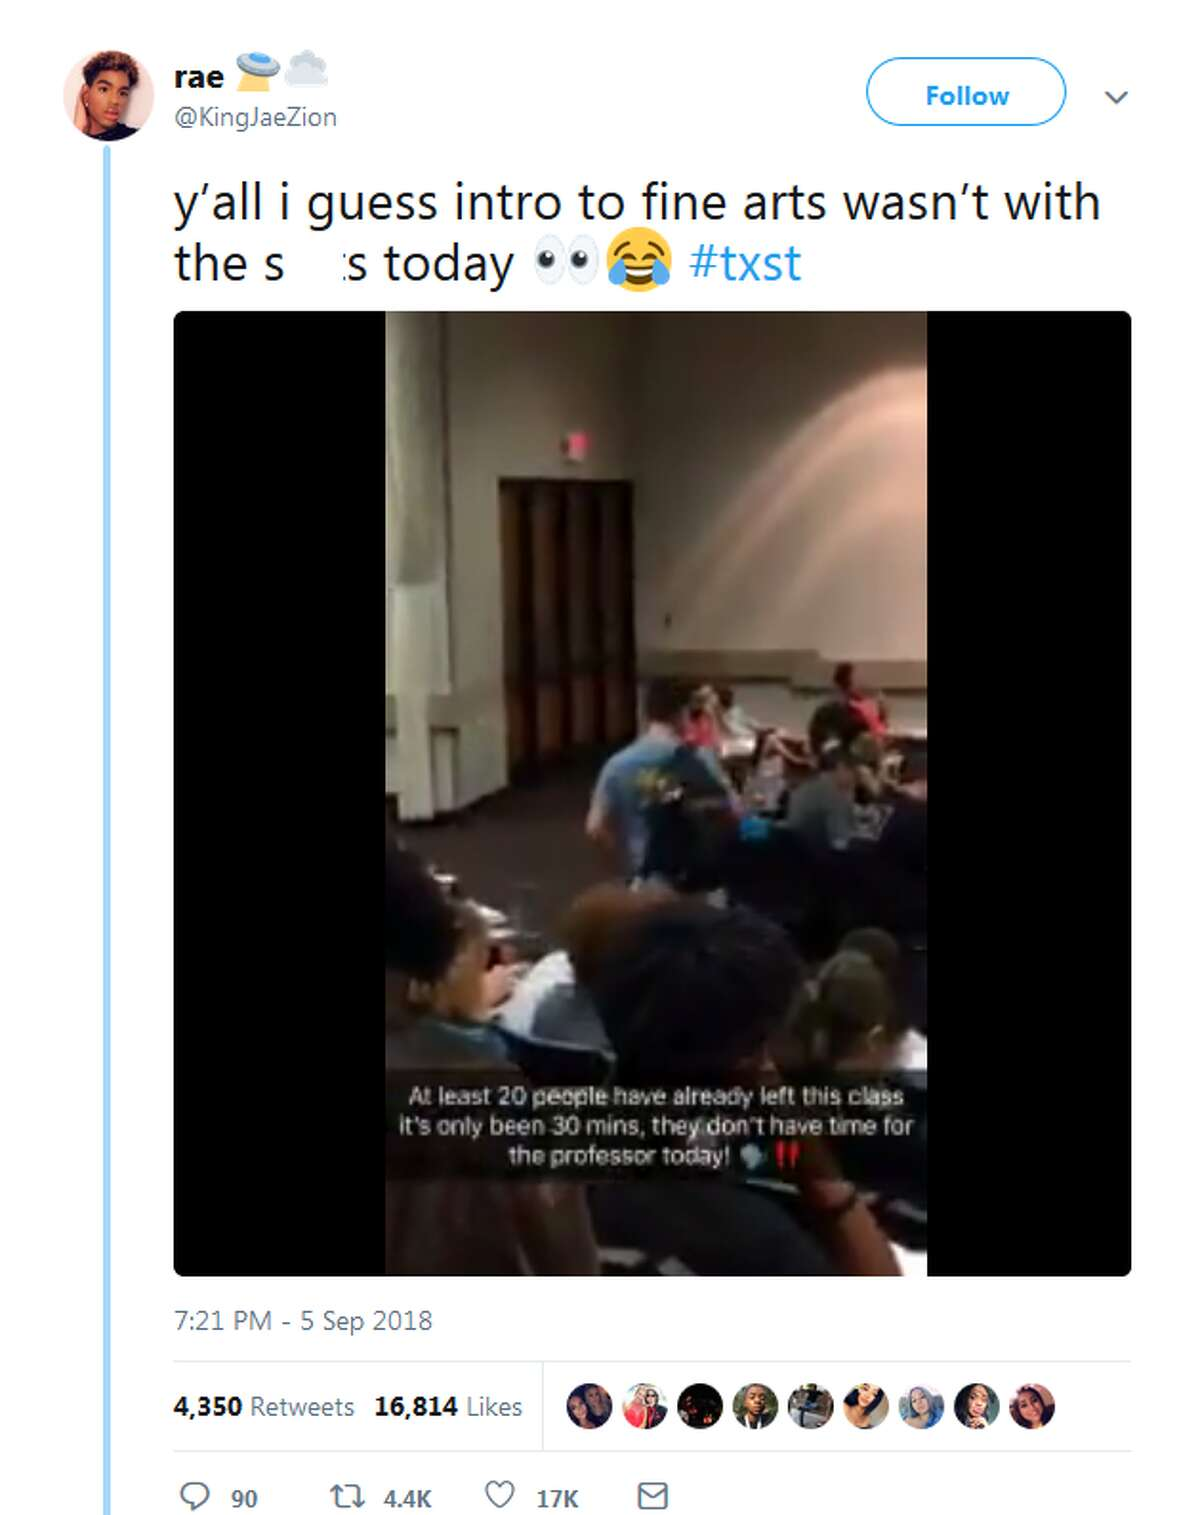 The Texas State student who caught his fellow Introduction to Fine Arts classmates walking out in the middle of class